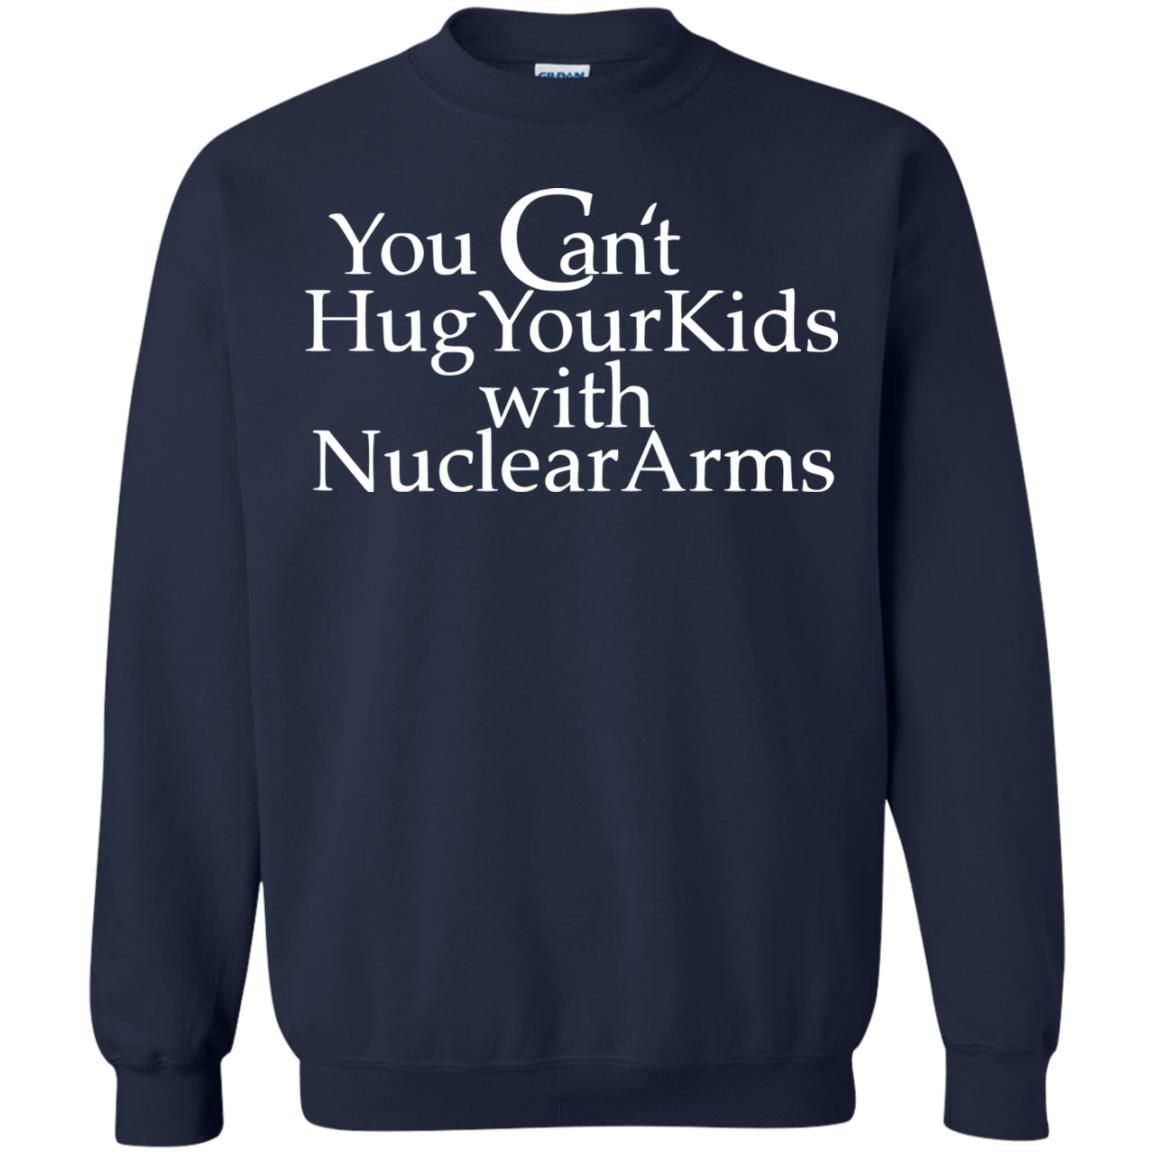 image 710 - You Can Hug Your Kids With Nuclear Arm shirt